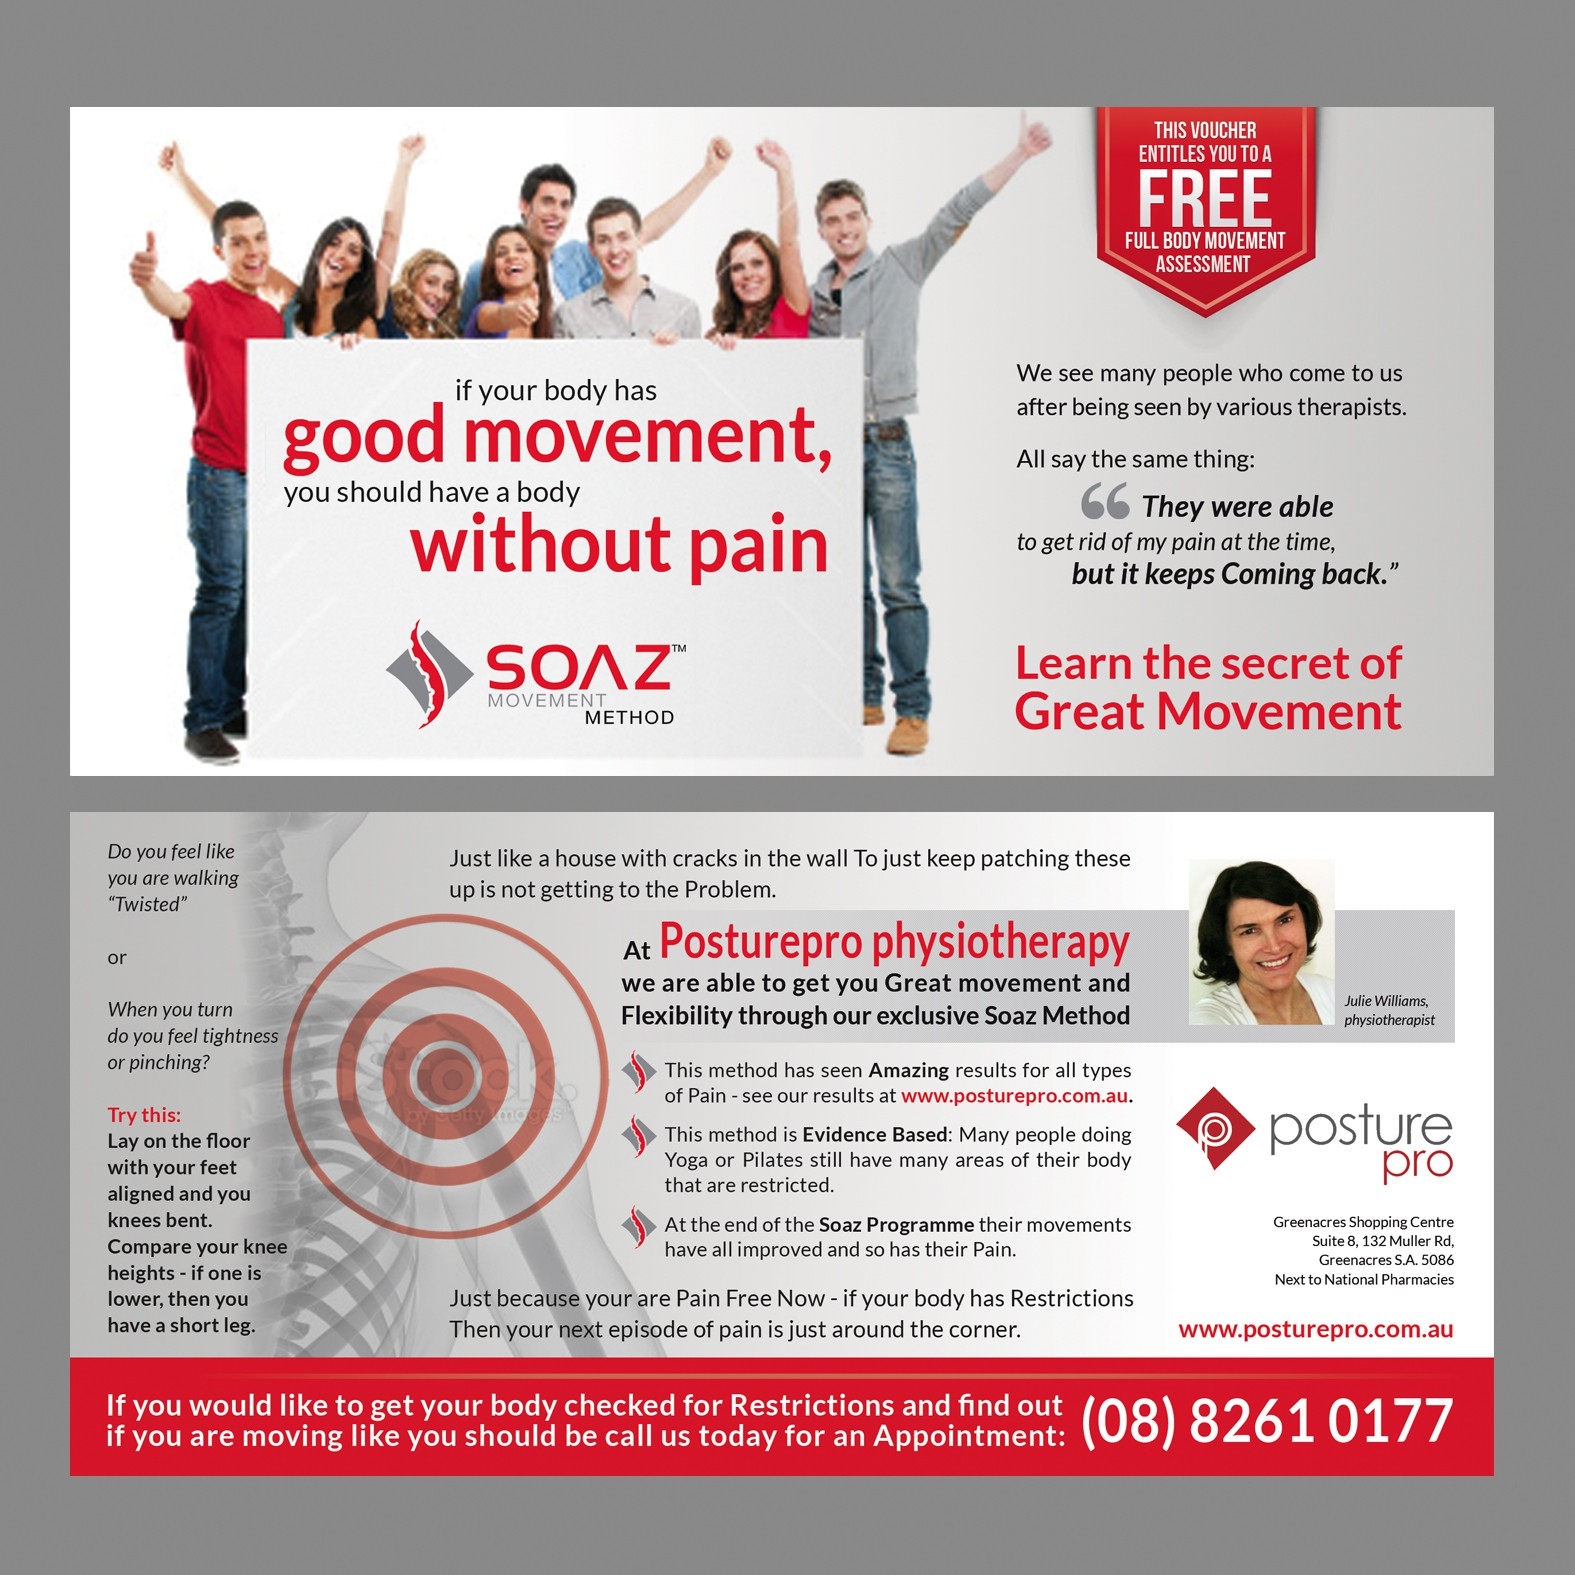 New postcard, flyer or print wanted for Posturepro physiotherapy